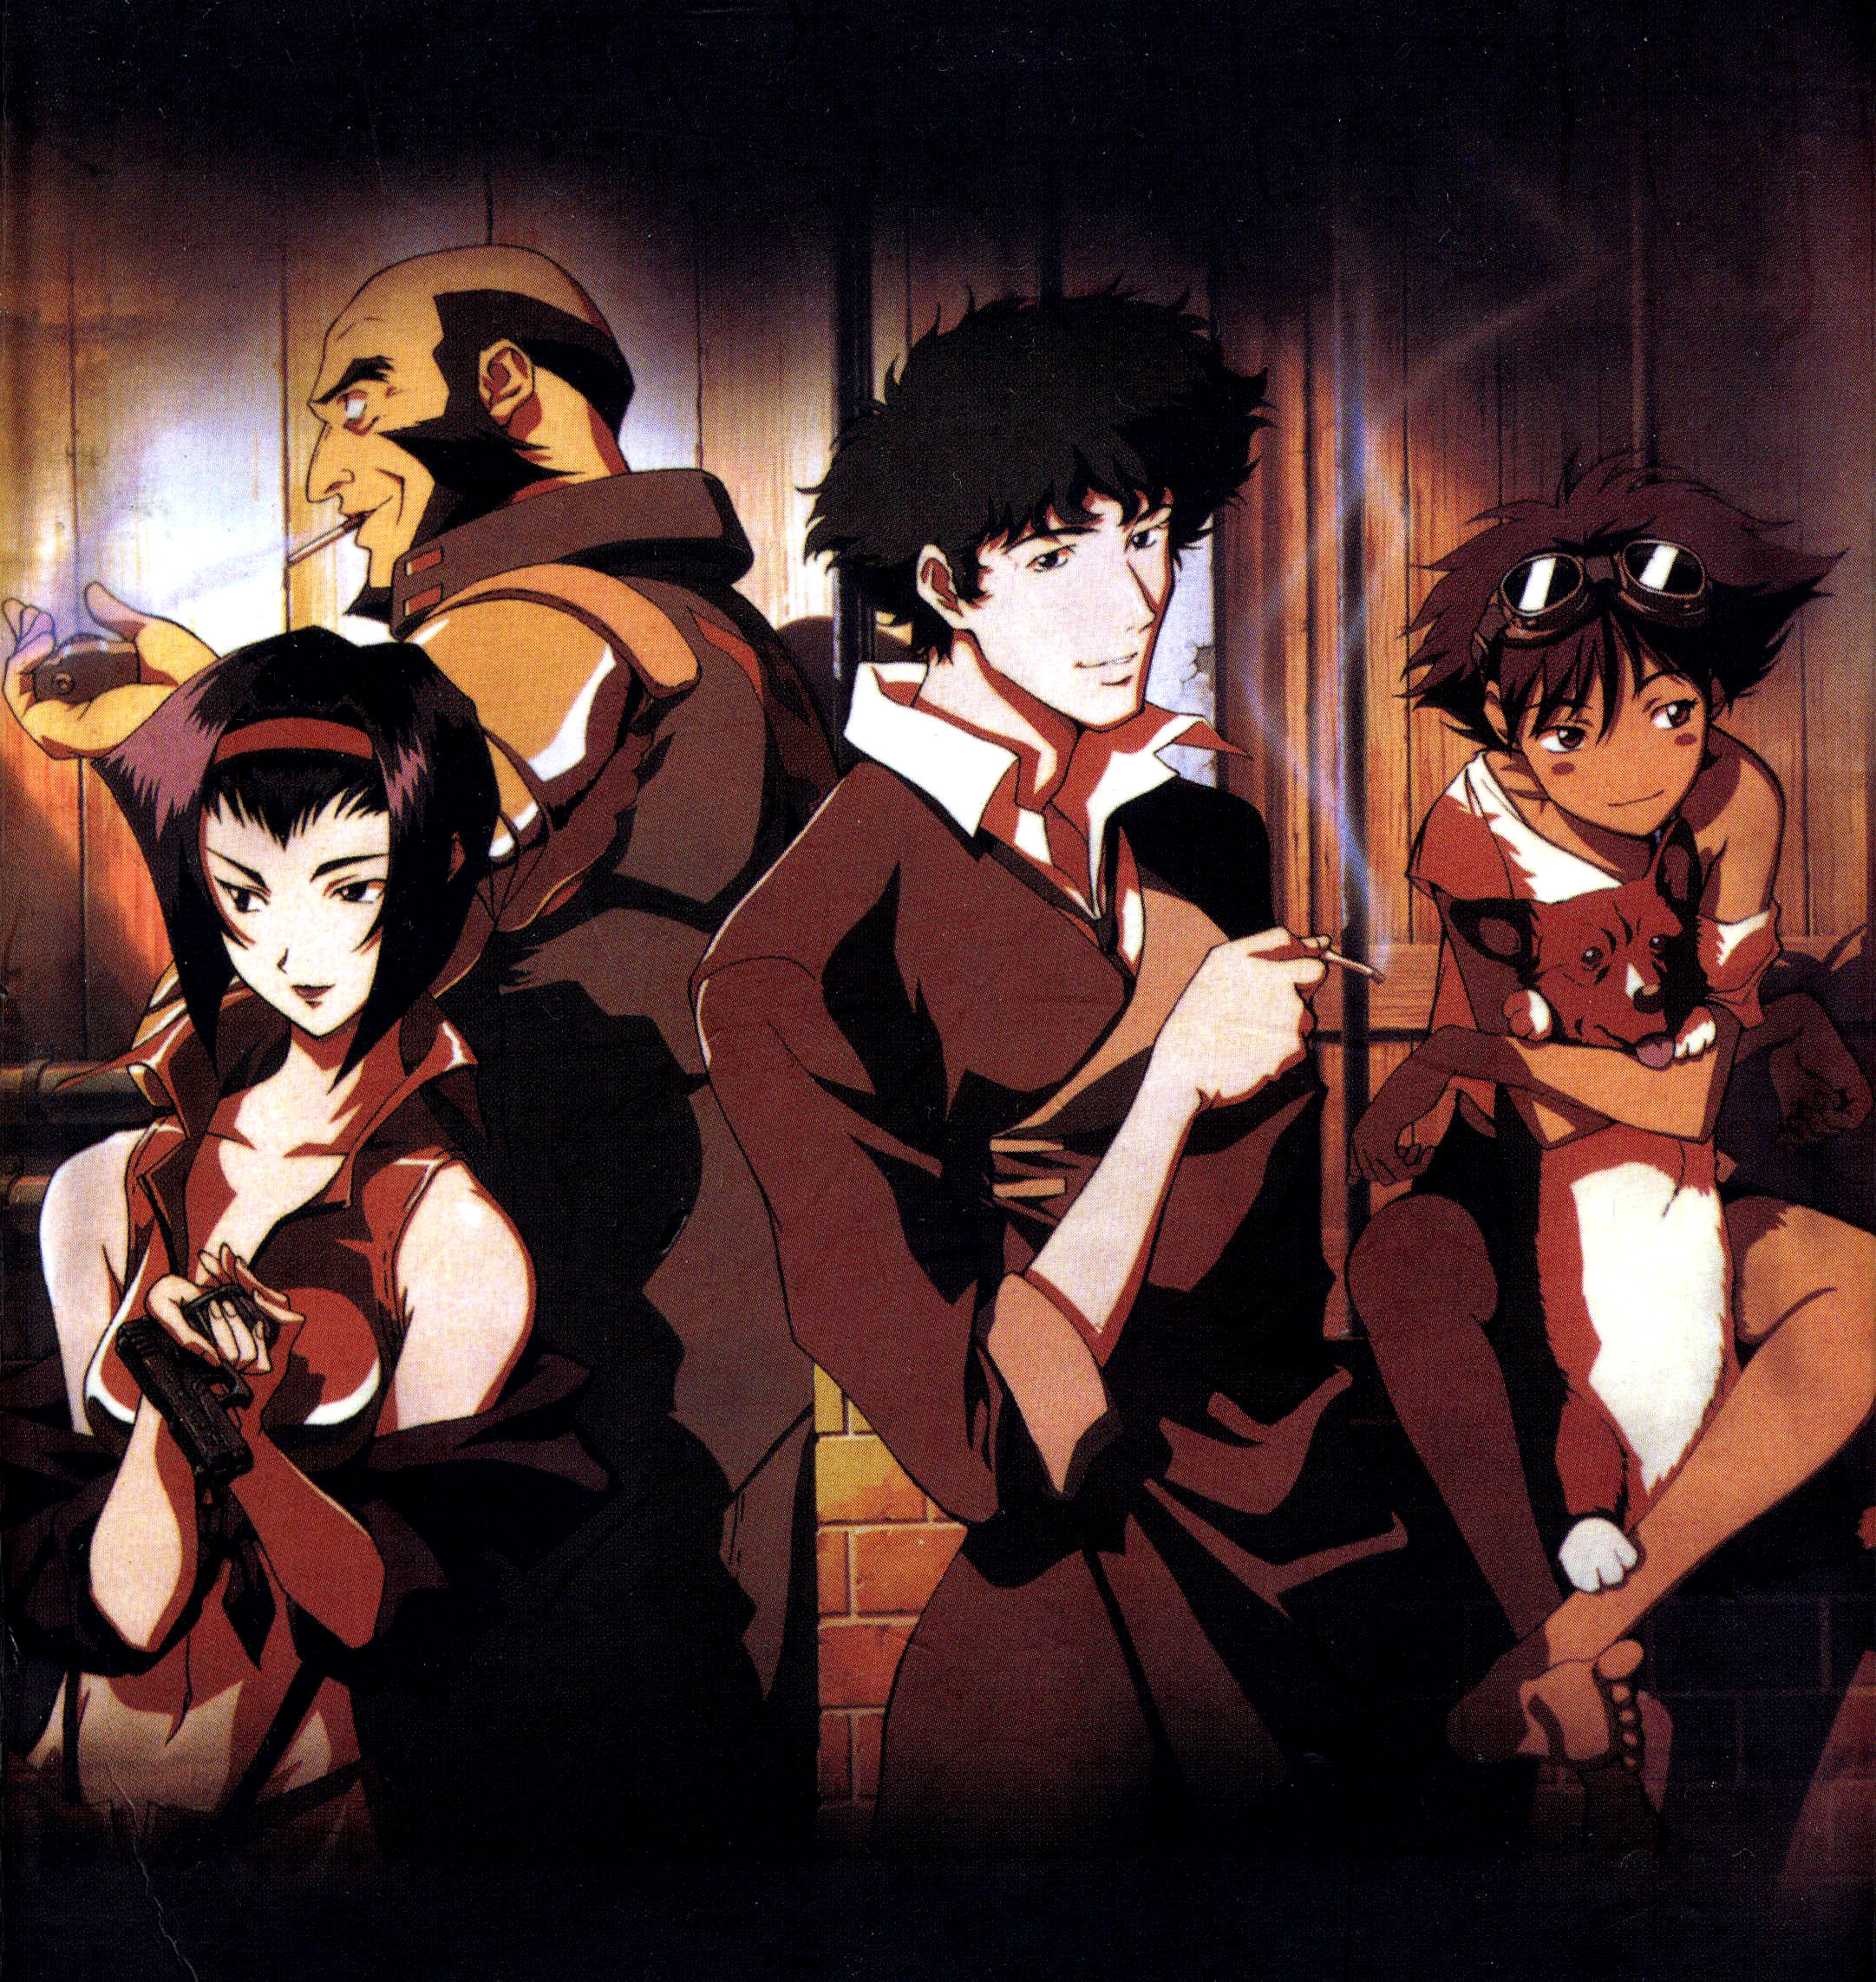 Cowboy bebop anime wallpapers high quality download free - High quality anime pictures ...